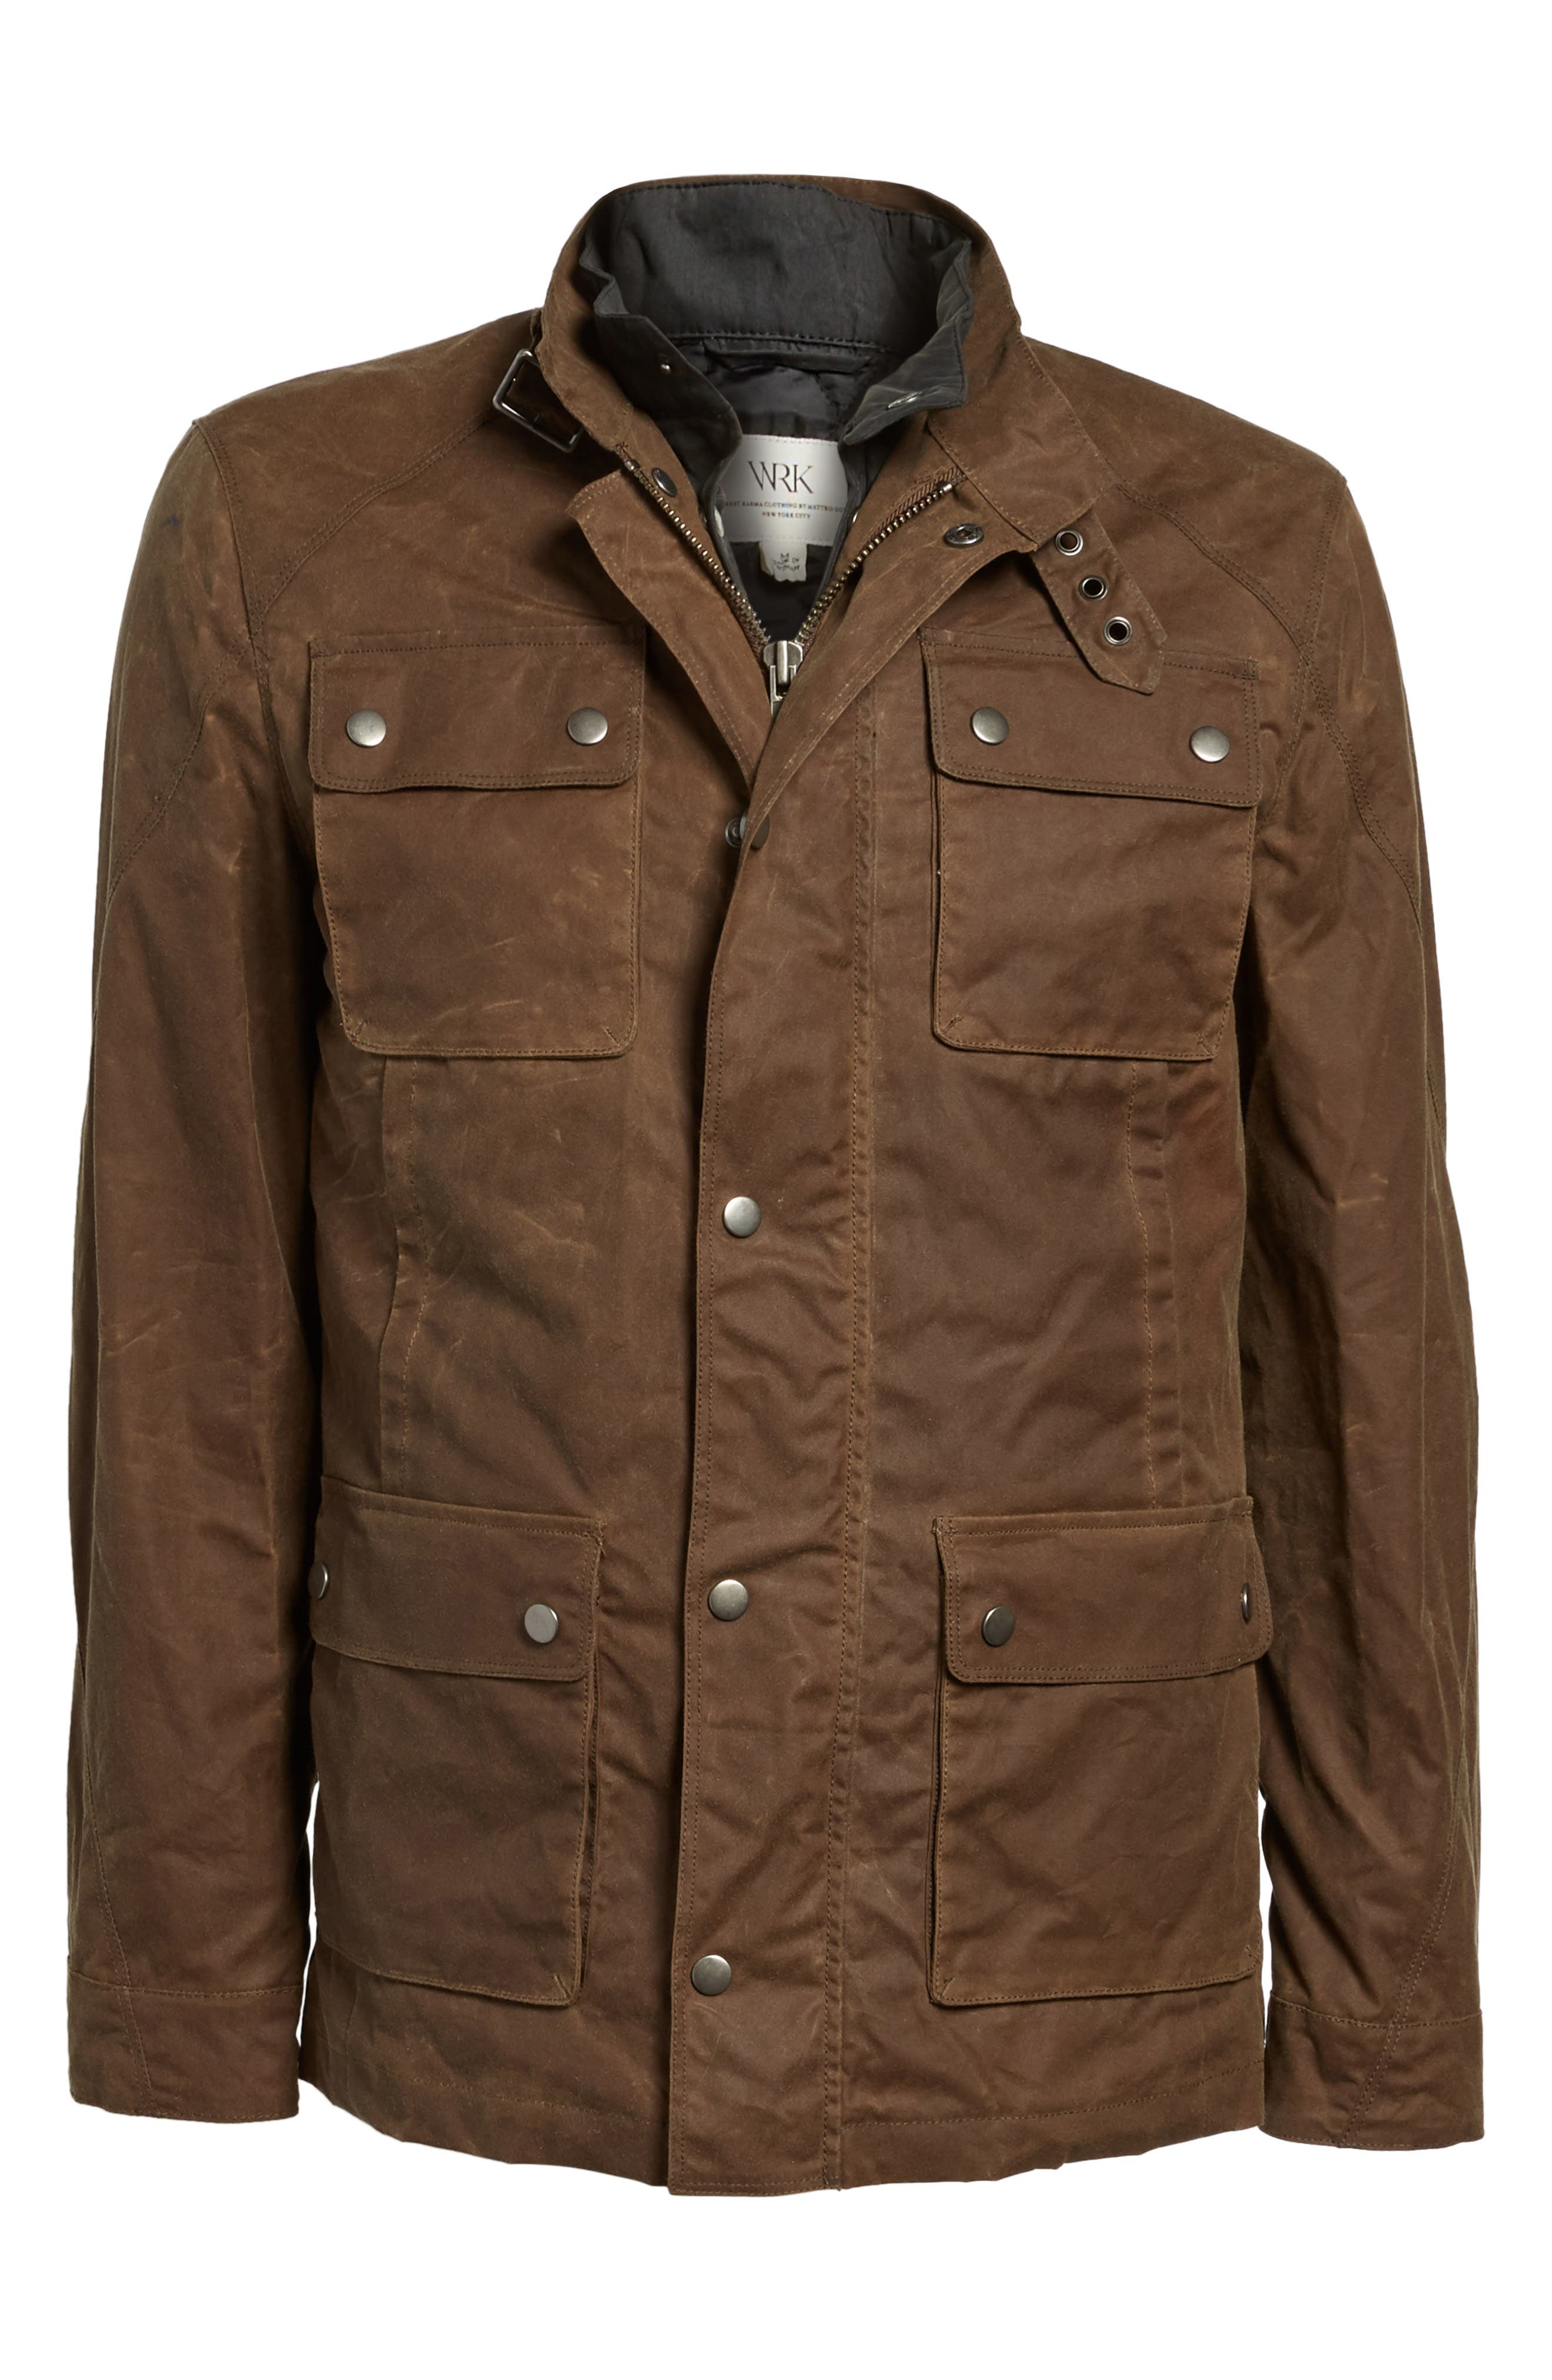 Alternate Image 5  - W.R.K 3-in-1 Waxed Cotton Jacket with Removable Vest